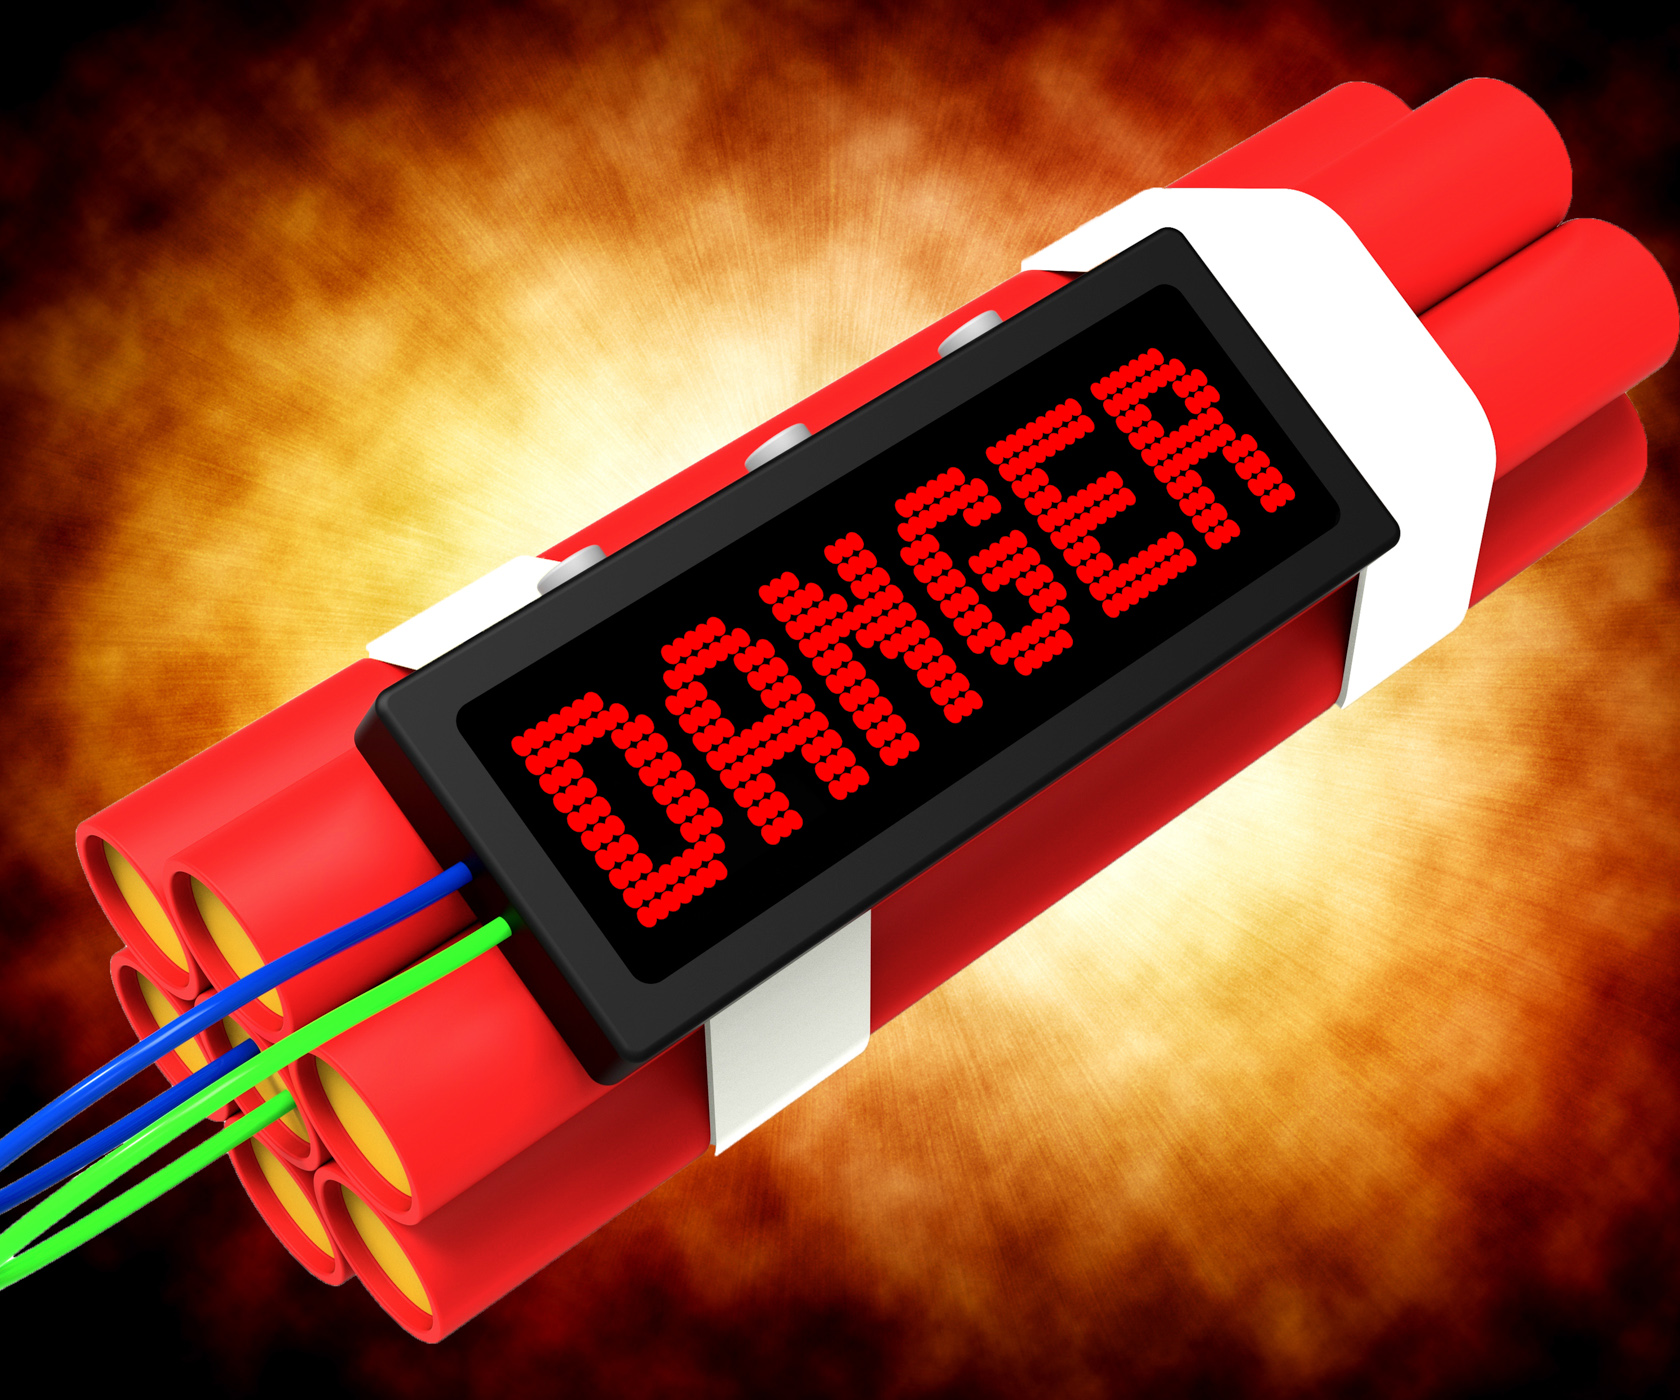 Danger Dynamite Sign Means Caution Or Dangerous, Advisory, Message, Sign, Safety, HQ Photo